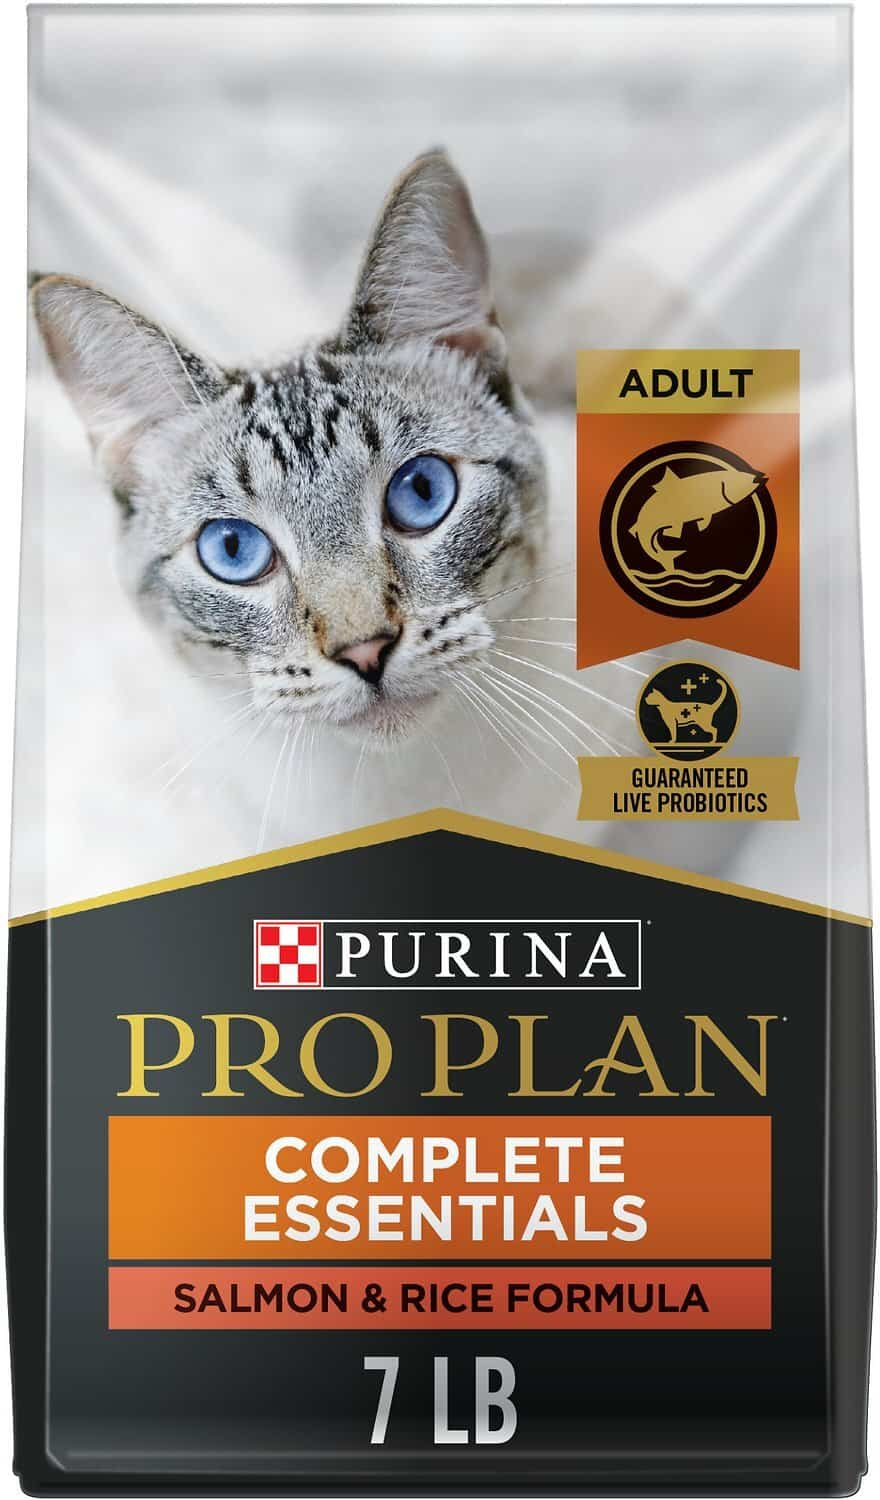 Purina Pro Plan Cat Food Review [year]: Advanced Nutrition for Cats 3